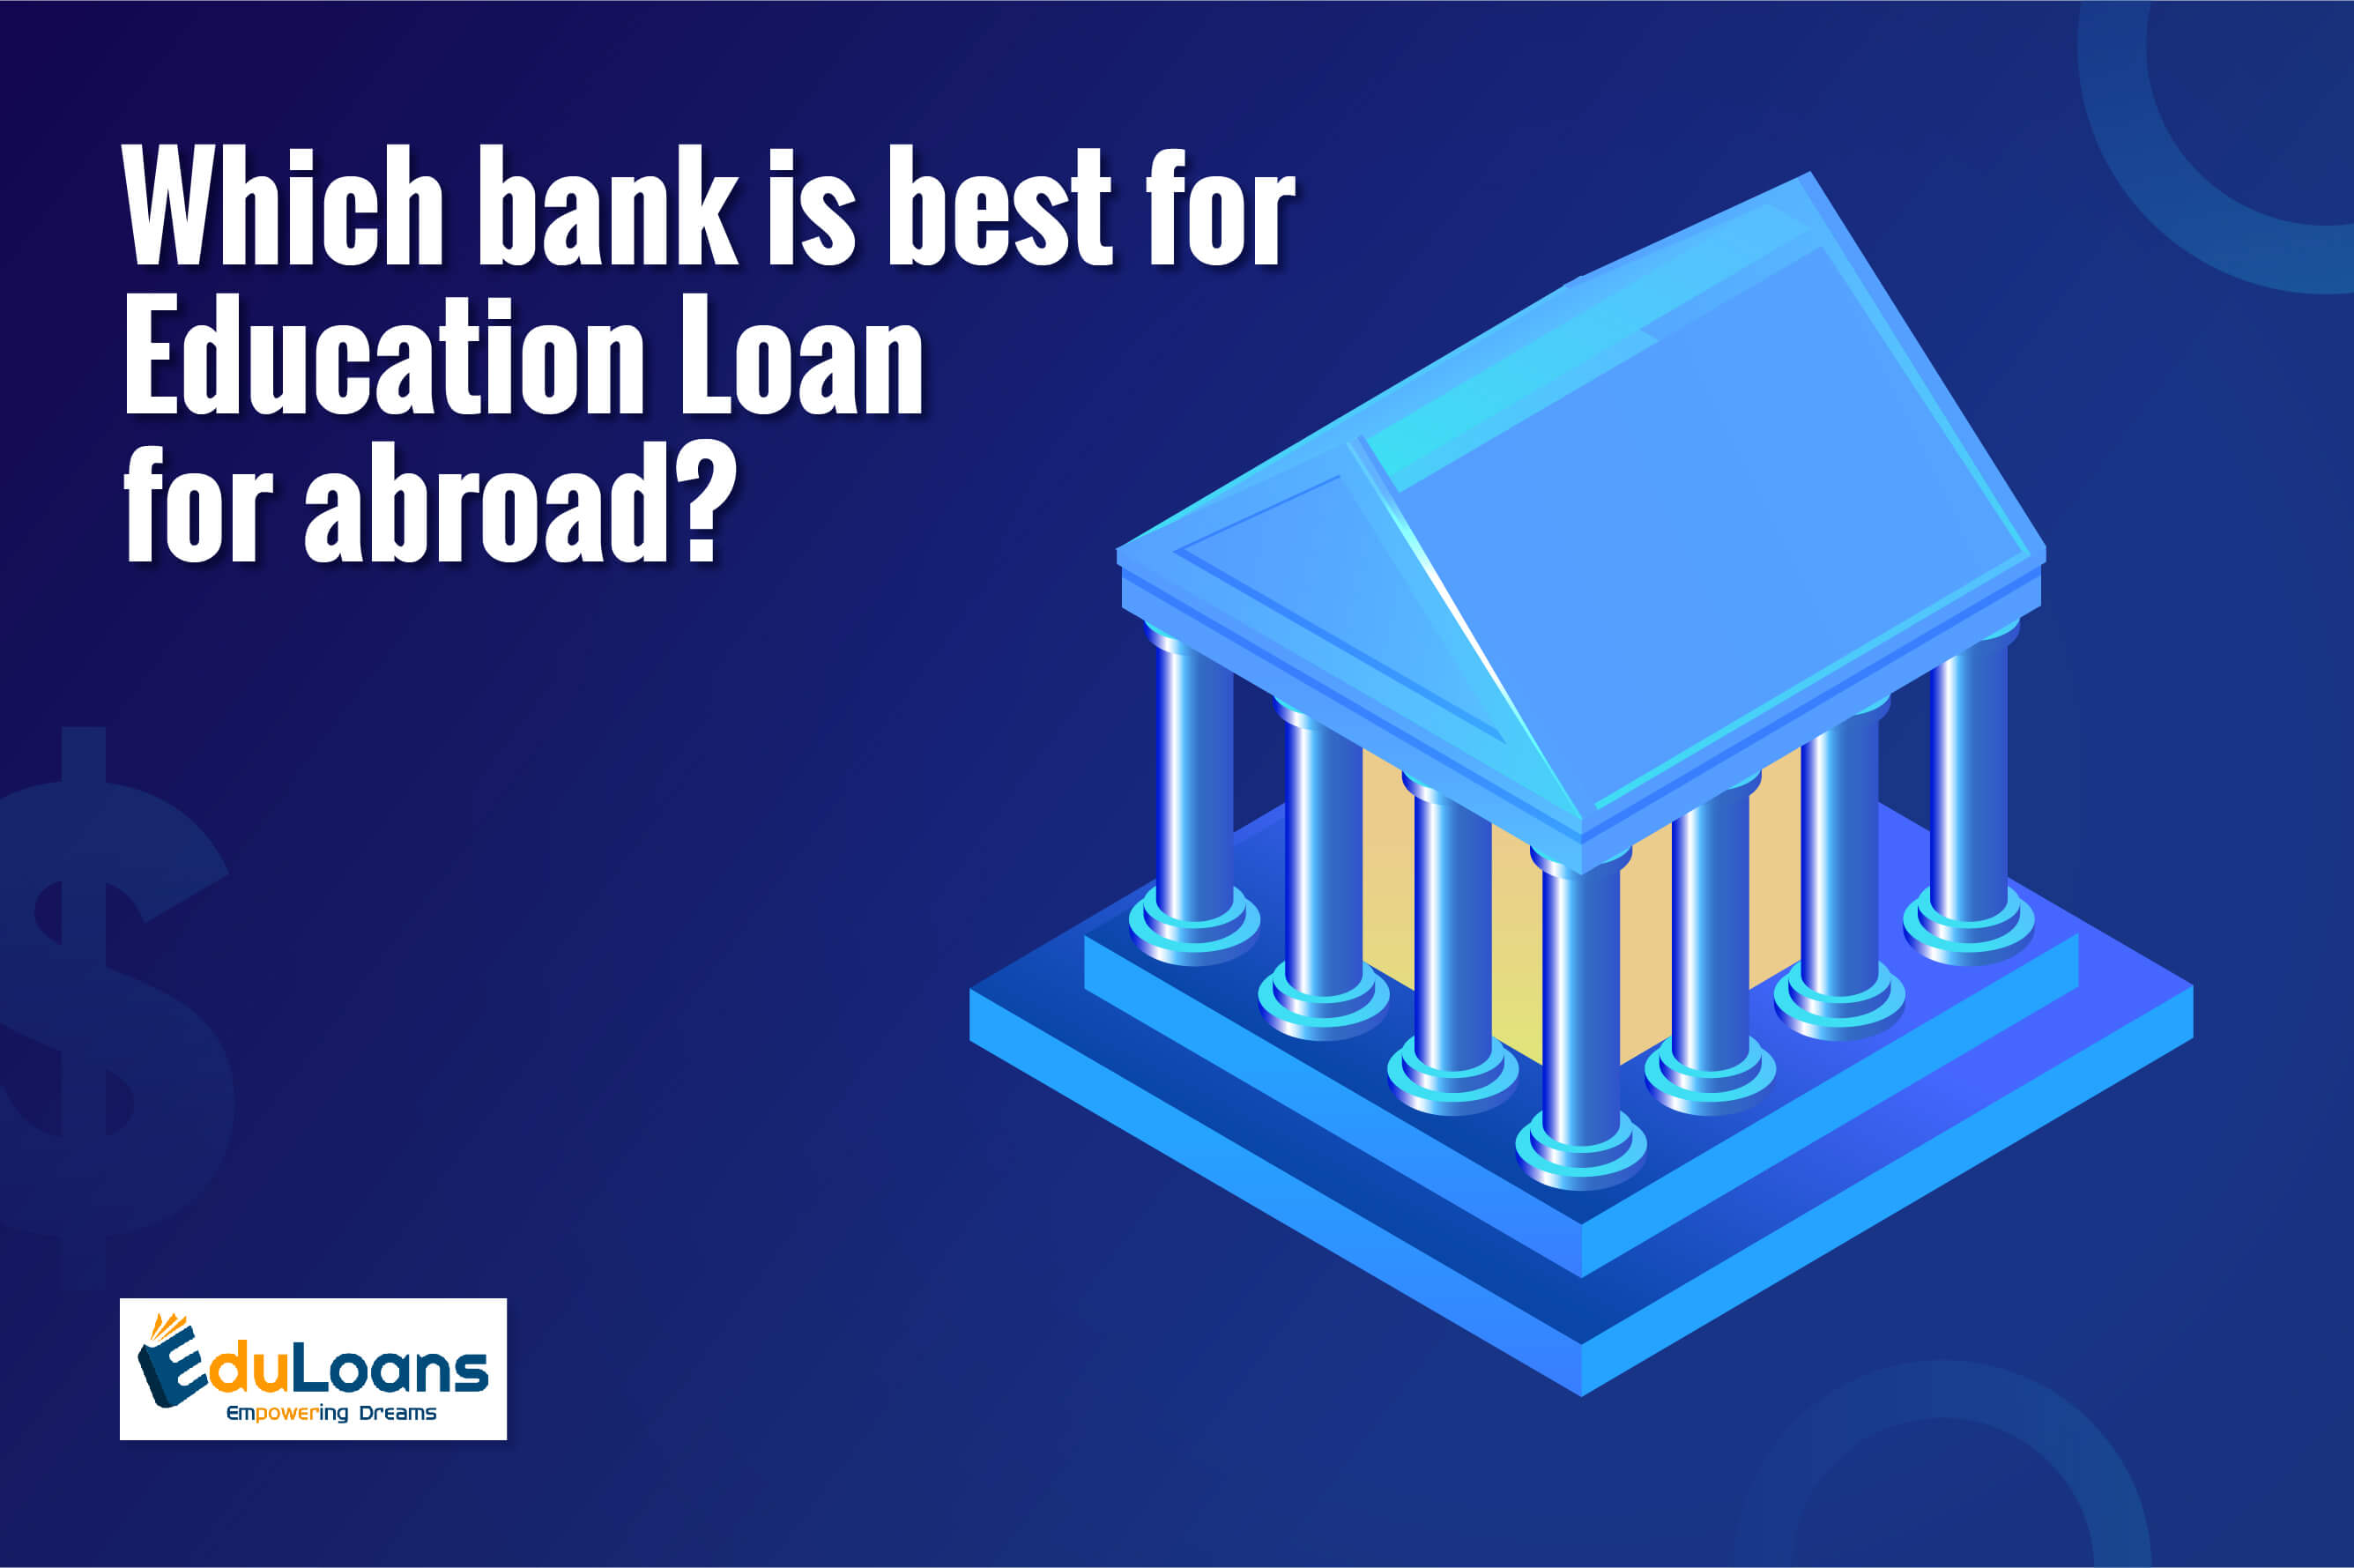 Which bank is best for education loan for abroad?